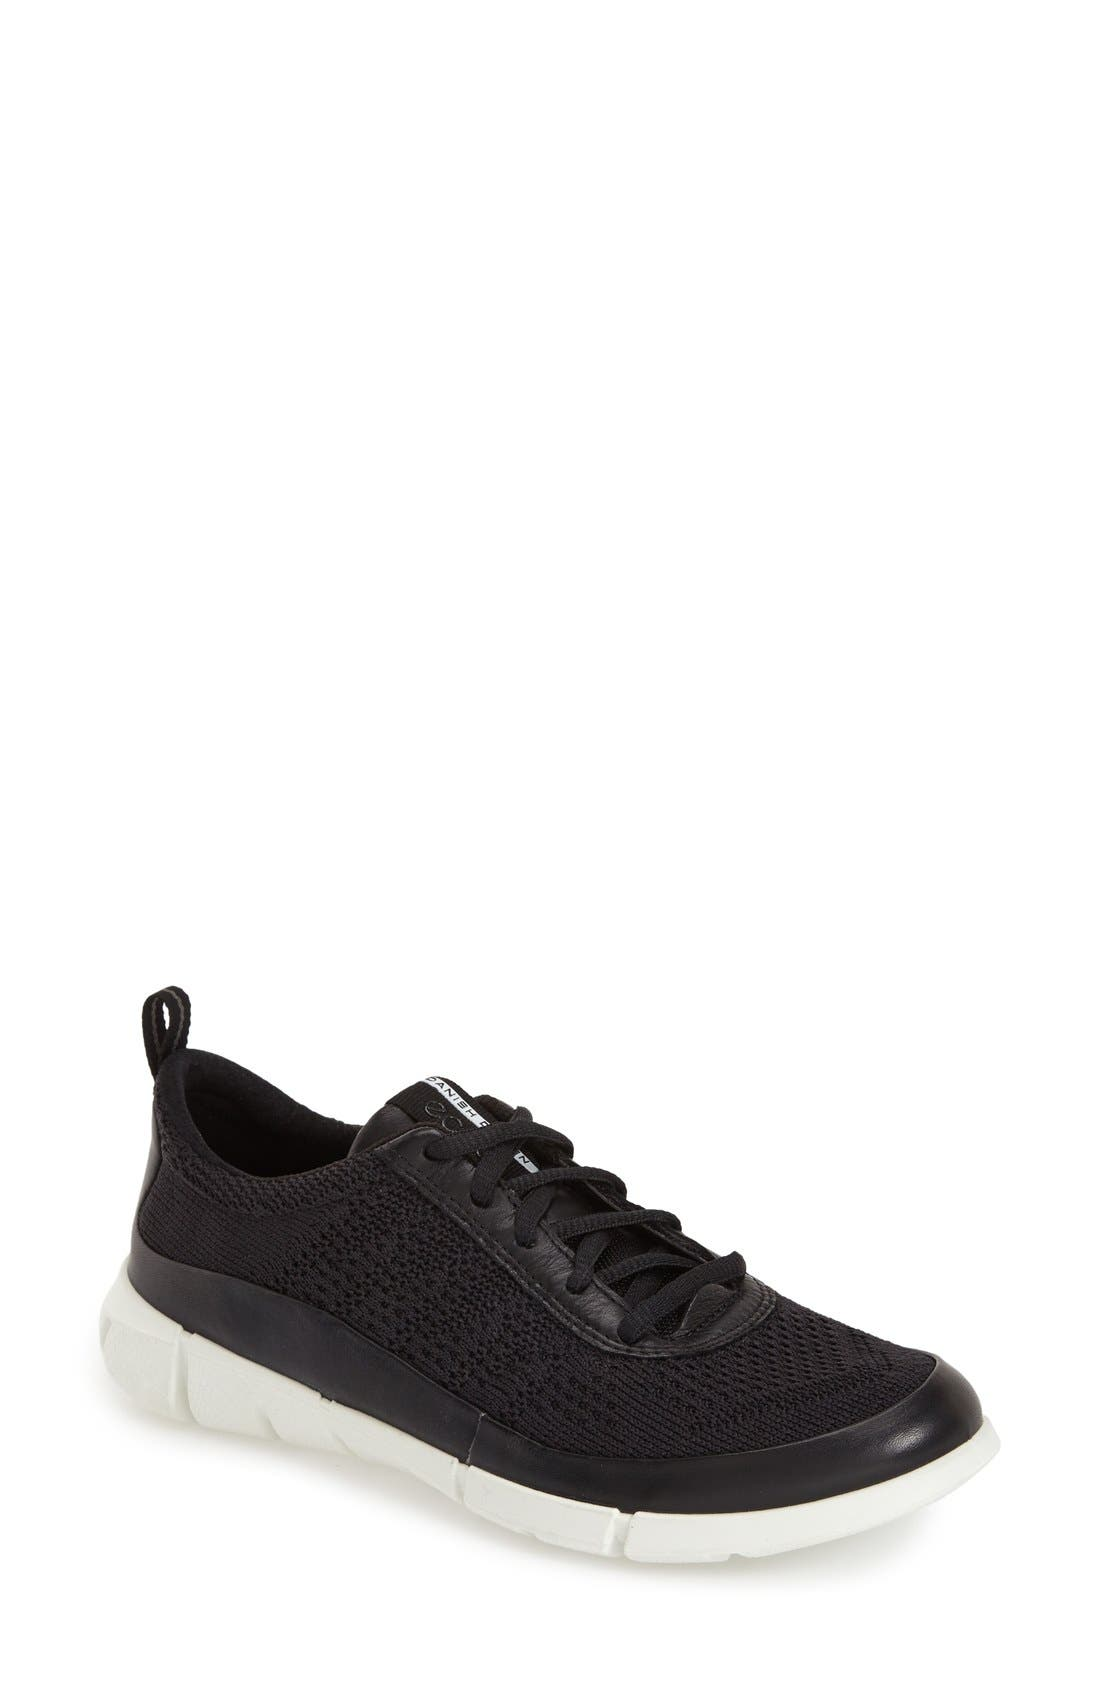 Alternate Image 1 Selected - ECCO 'Intrinsic' Sneaker (Women)